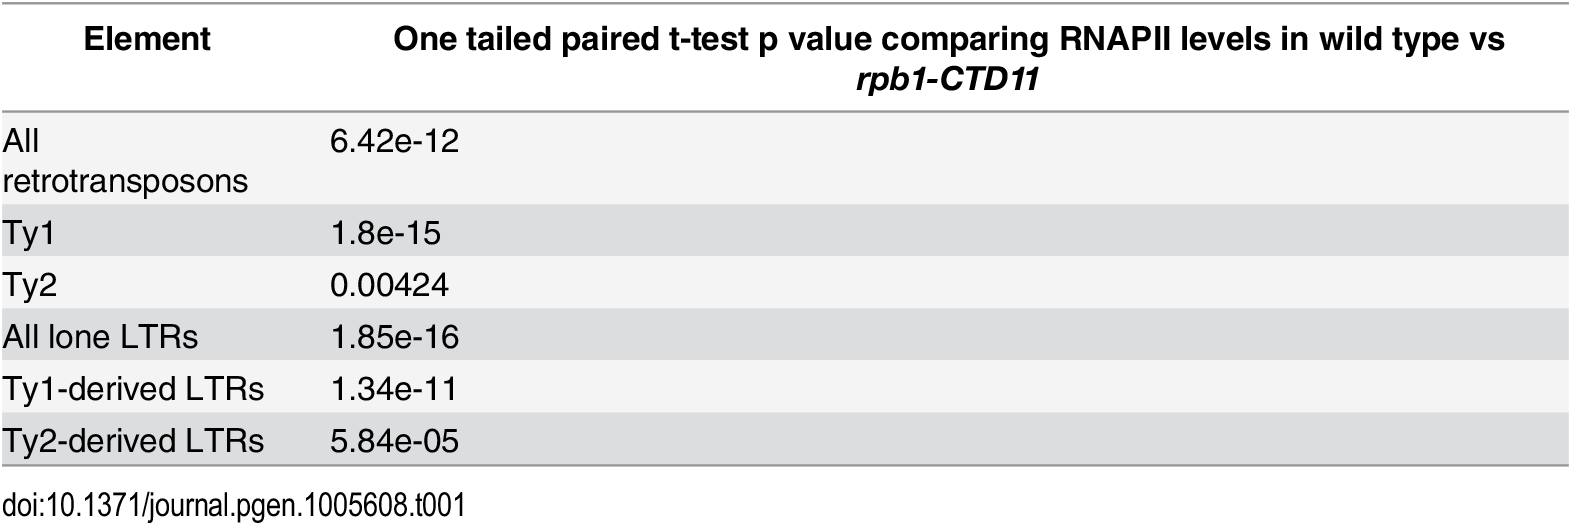 Paired t-test p values comparing RNAPII levels in wild type vs <i>rpb1-CTD11</i> at Ty1 and Ty1 retrotransposons and derived-LTRs.